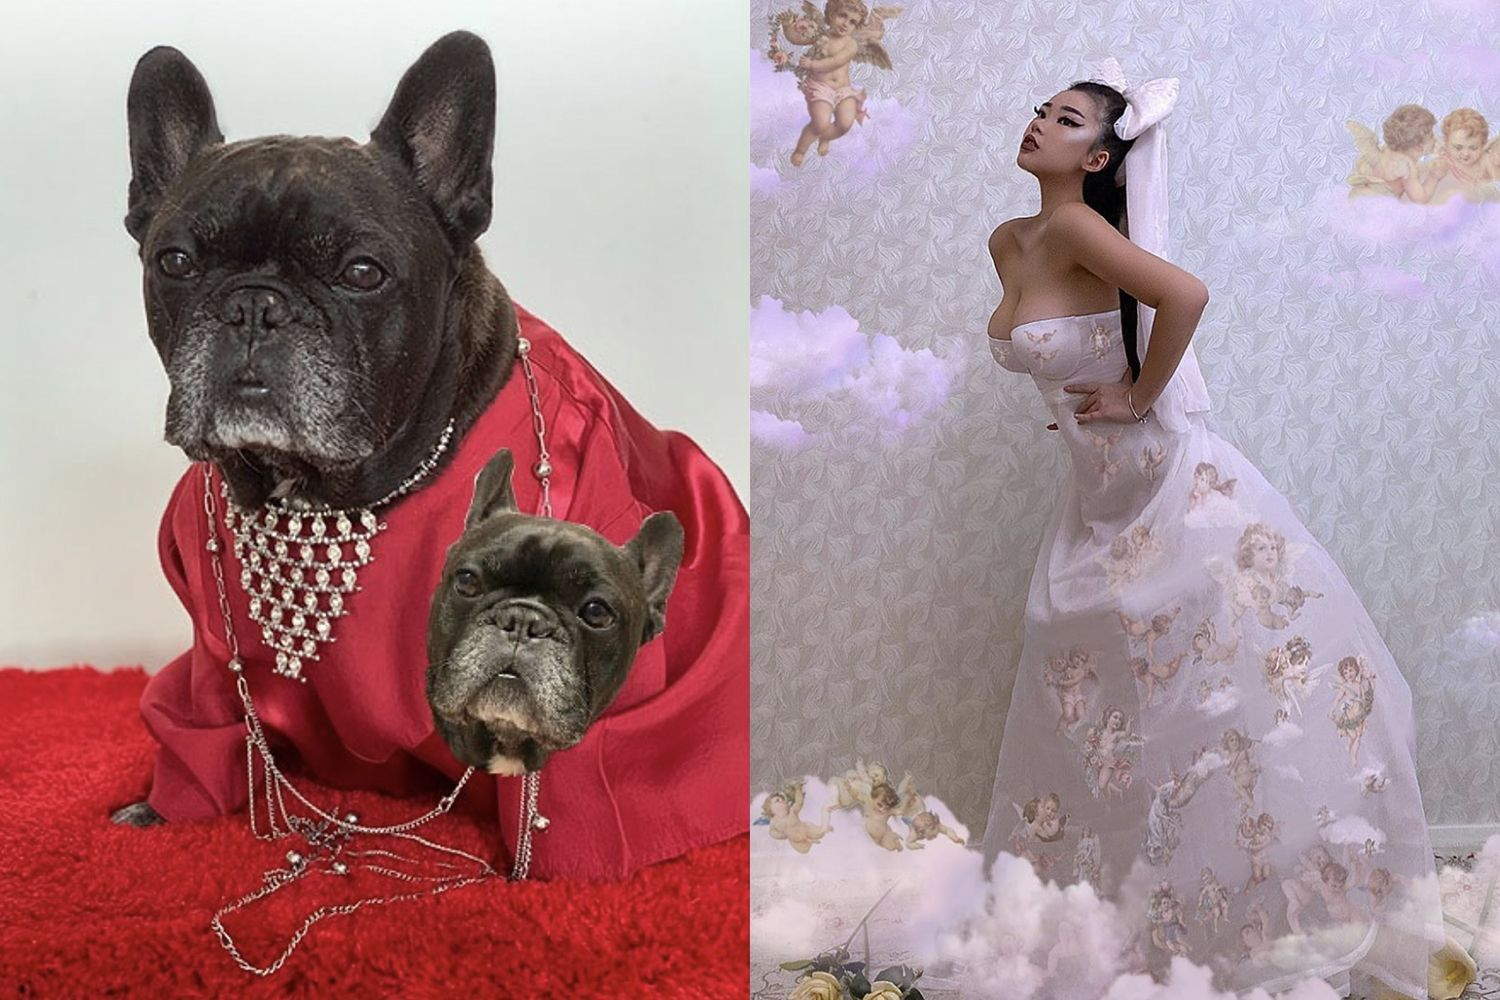 The #MetGalaChallenge Is Almost Better Than The Real Thing